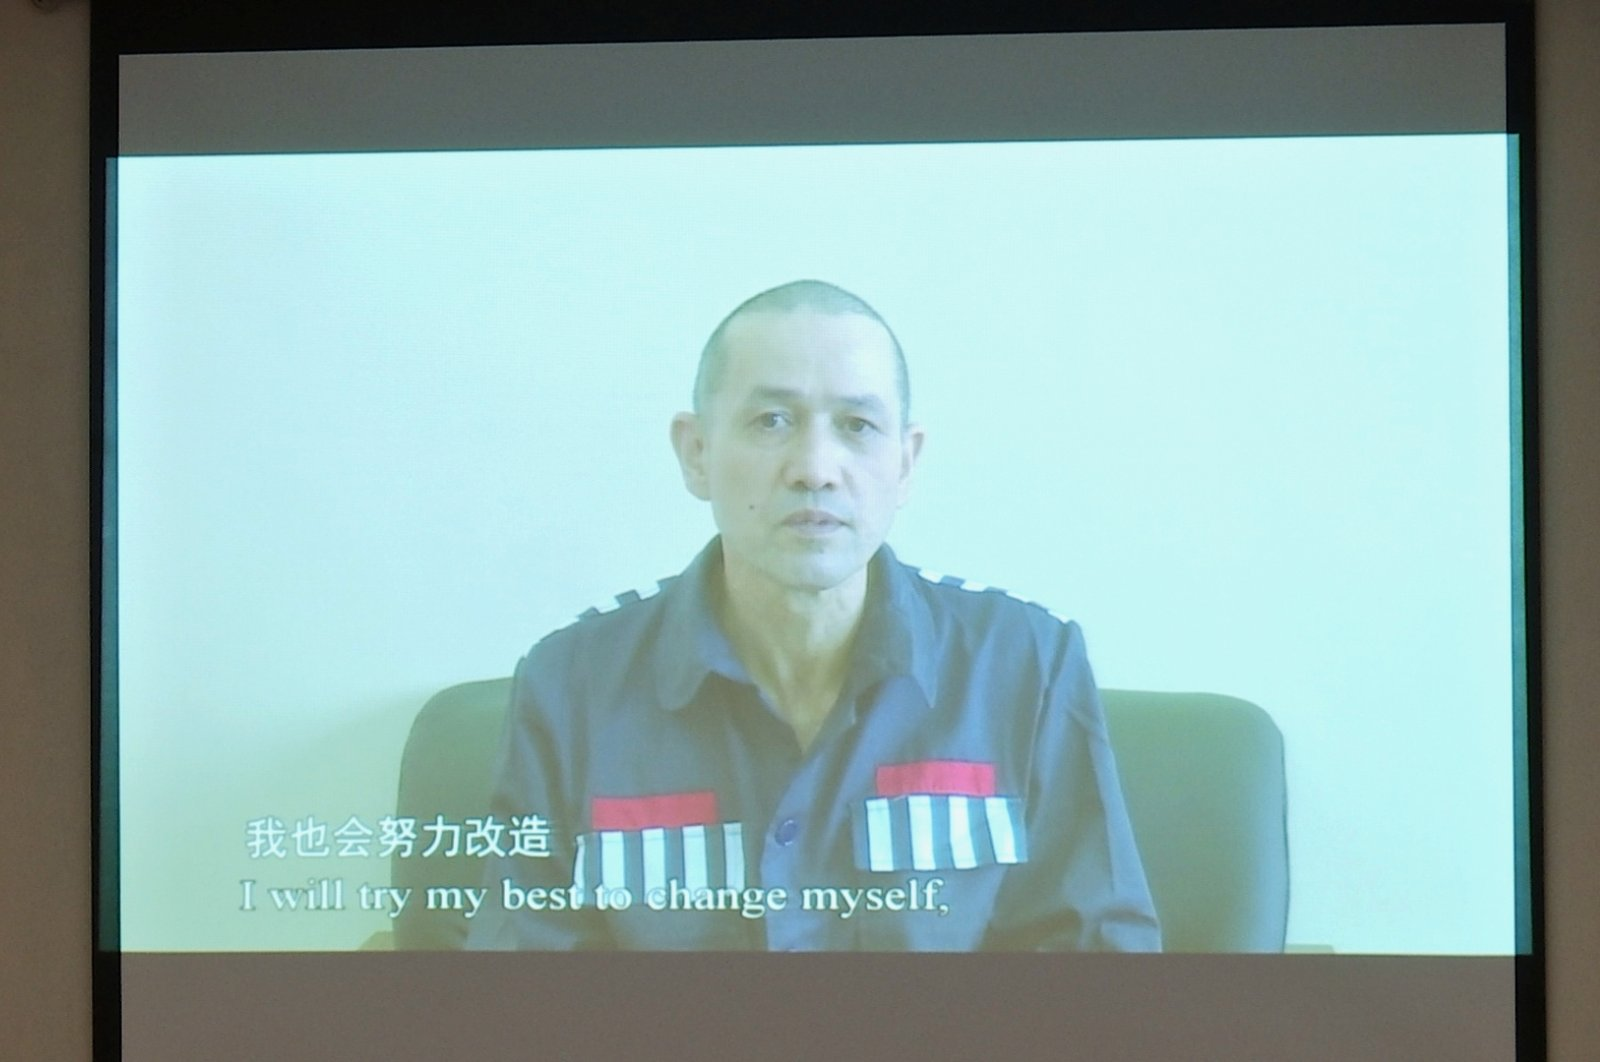 Erkin Tursun, a former TV producer who officials say is serving a 20-year sentence in Xinjiang, is seen speaking on a video shown at a news conference on Xinjiang-related issues, in Beijing, China April 9, 2021. (Reuters Photo)